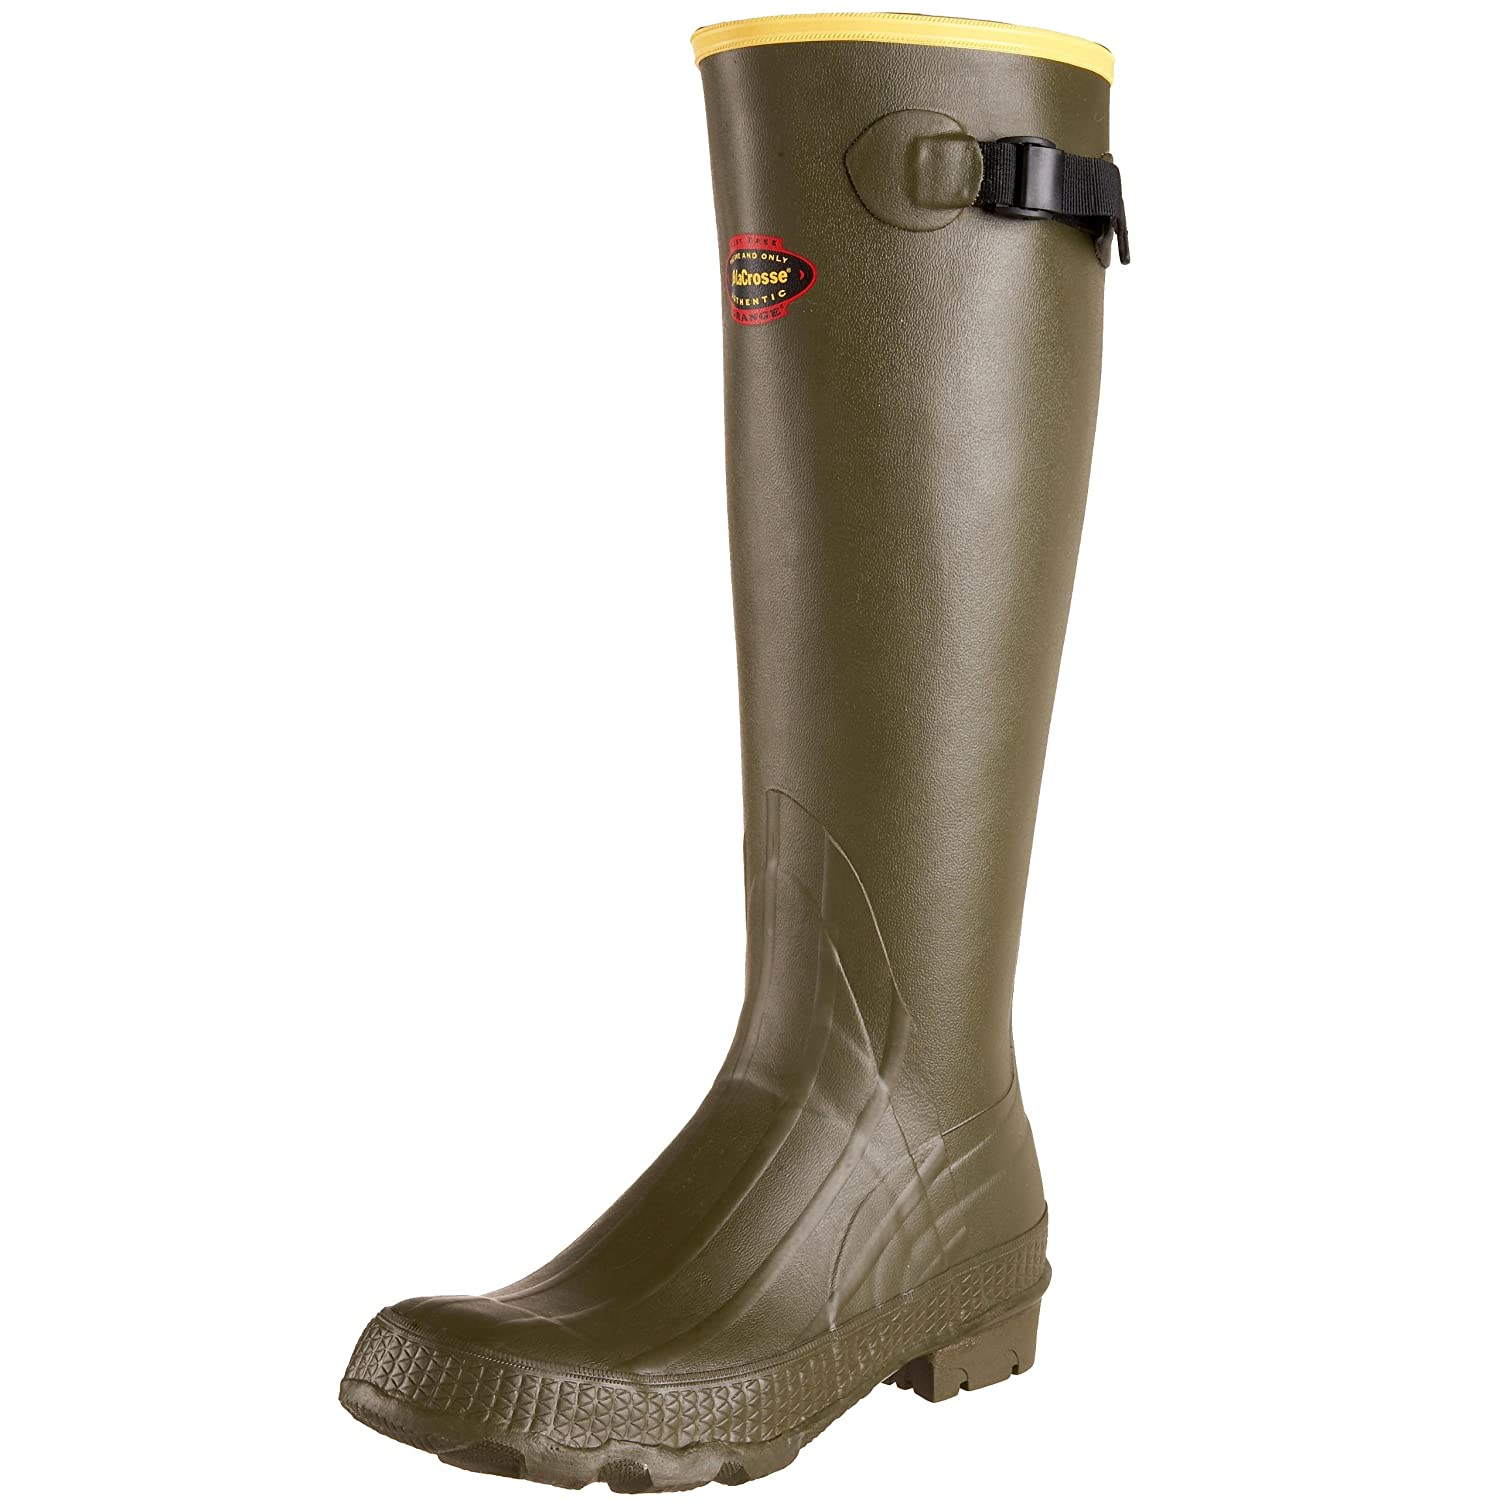 sale retailer 84eb0 b7453 The 10 Best Rubber Hunting Boots - Review with Buying Guide 2019